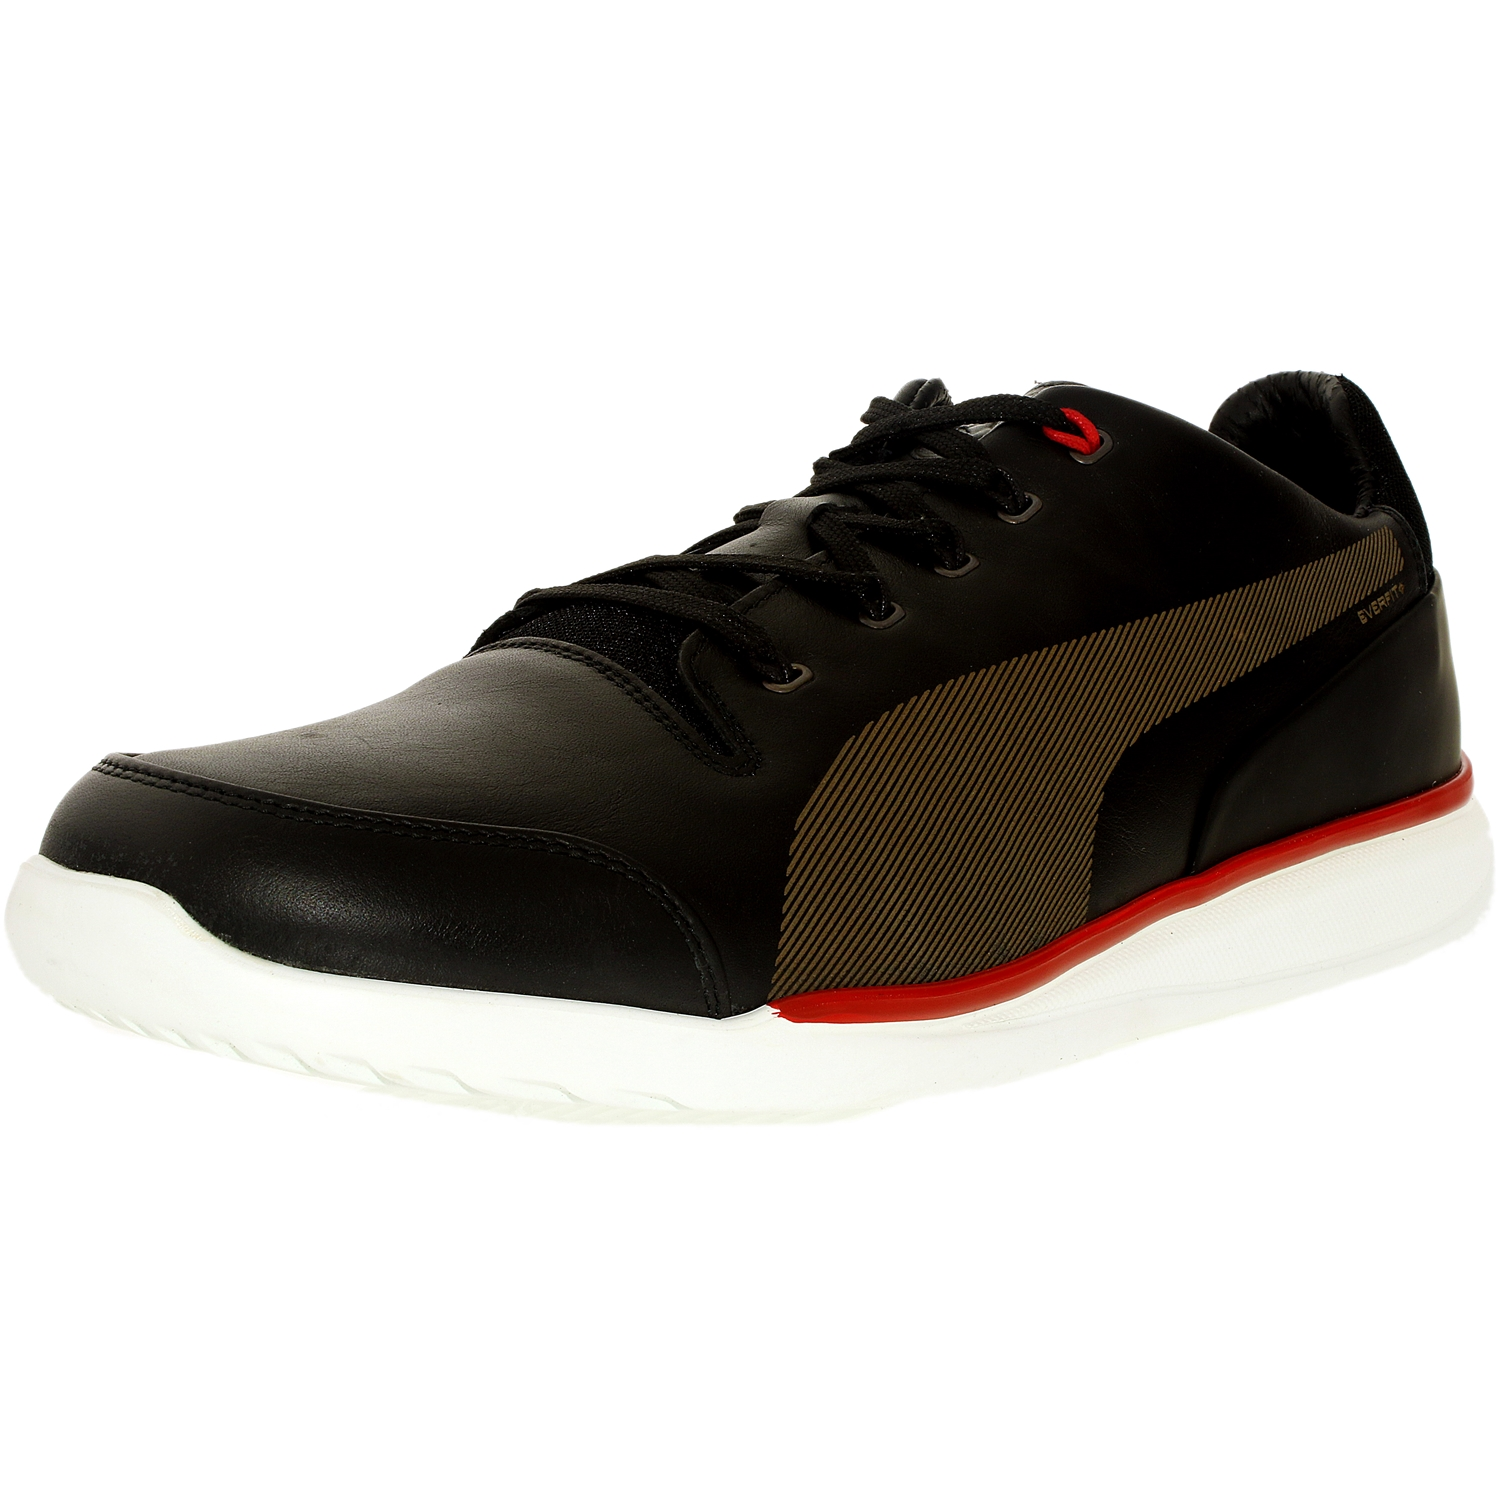 Puma Men's Titolo Sf Everfit+ Moonless Night/Rosso Corsa Ankle-High Walking Shoe - 13M - image 1 de 1